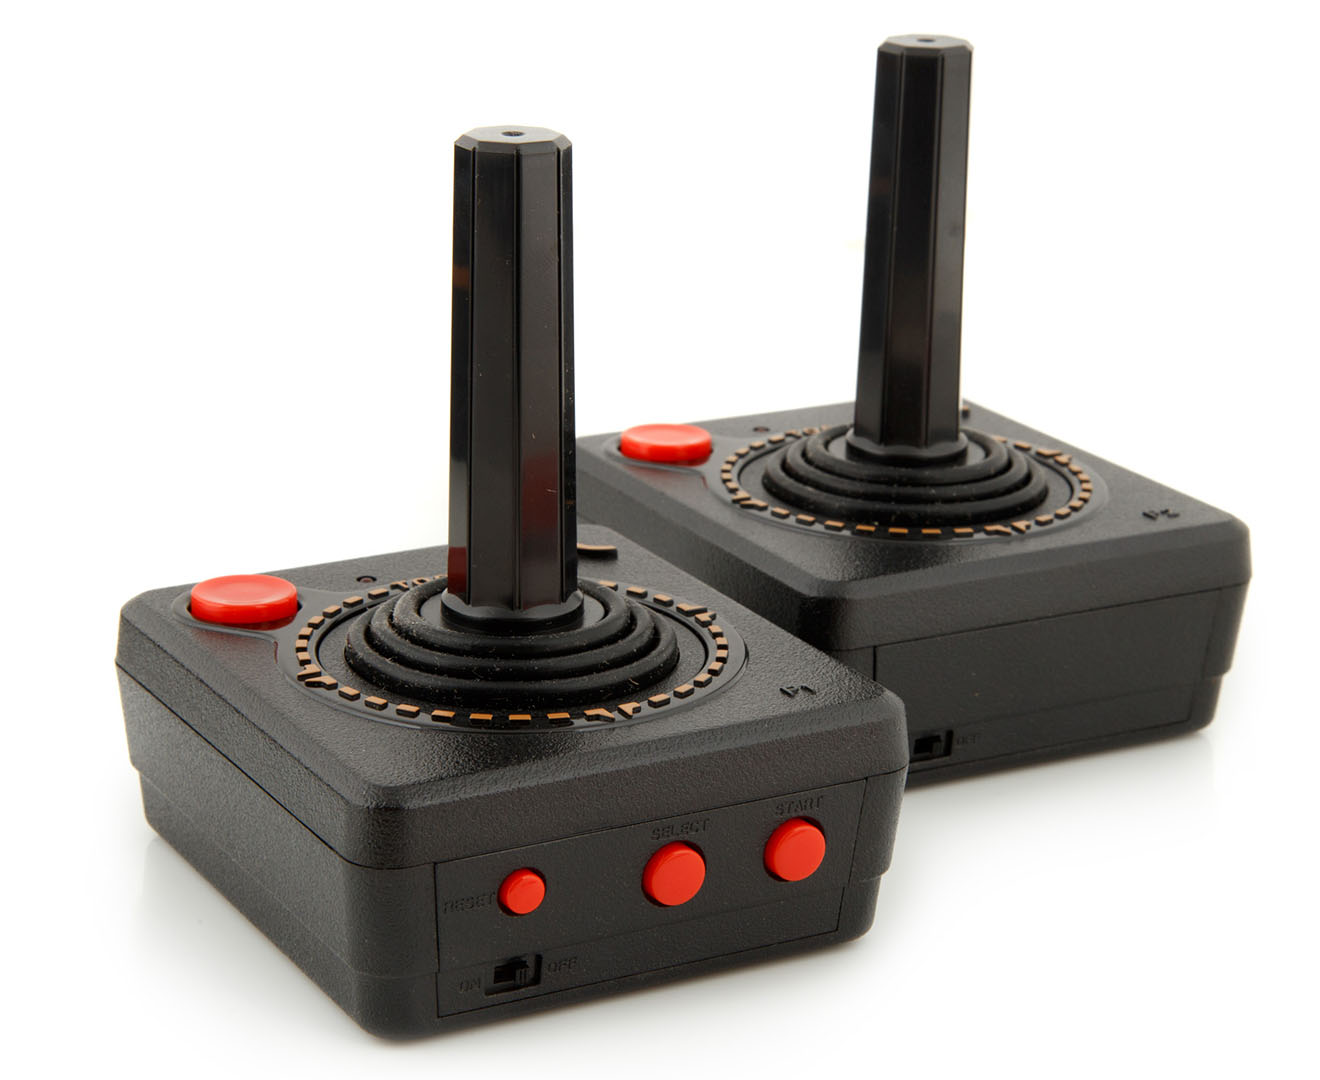 atari flashback 7 classic game console 101 built in games. Black Bedroom Furniture Sets. Home Design Ideas